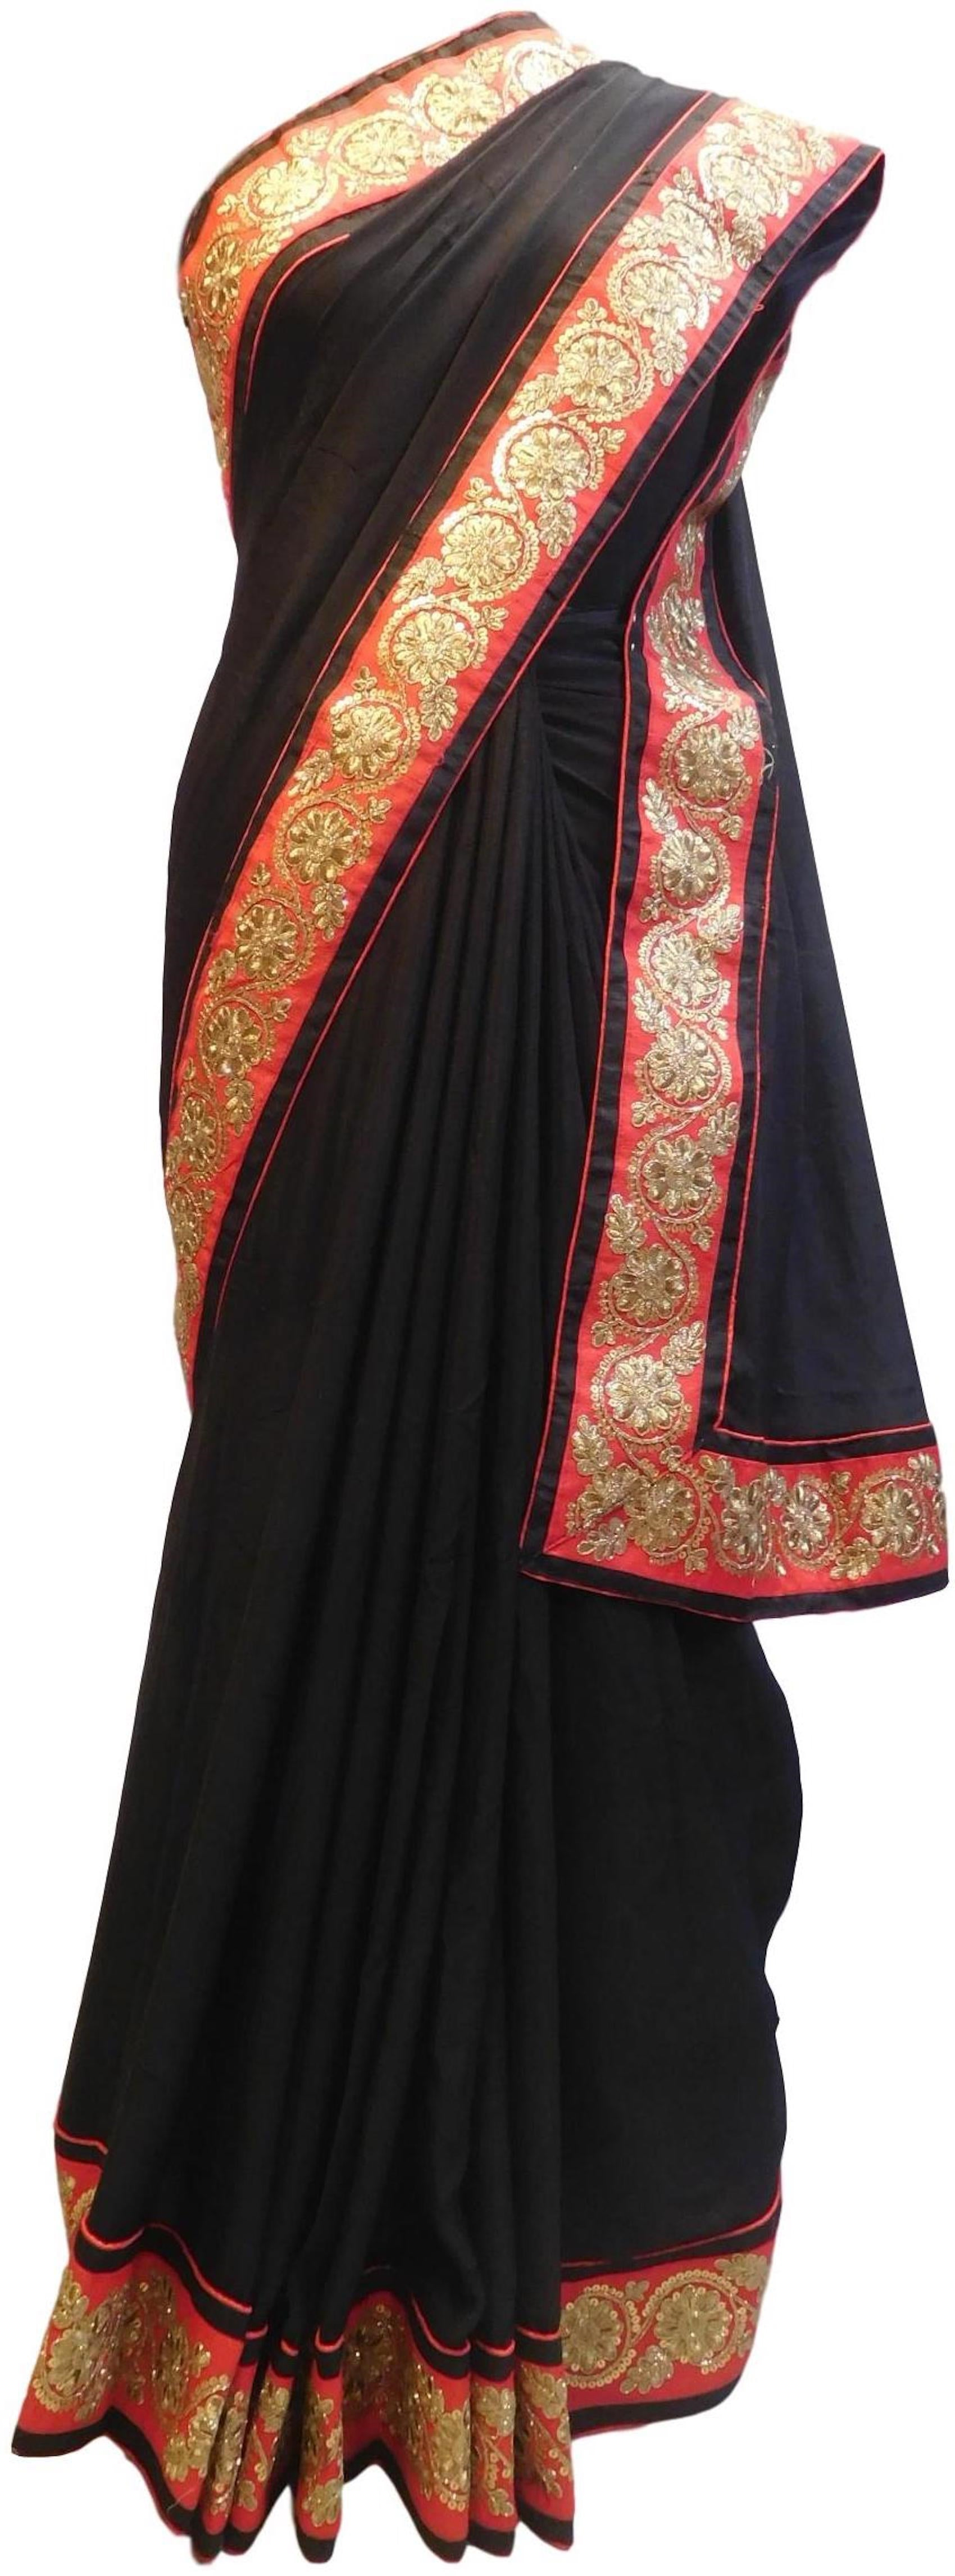 Black Designer Wedding Partywear Ethnic Bridal Crepe (Chinon) Hand Embroidery Sequence Zari Work Kolkata Women Saree Sari E212